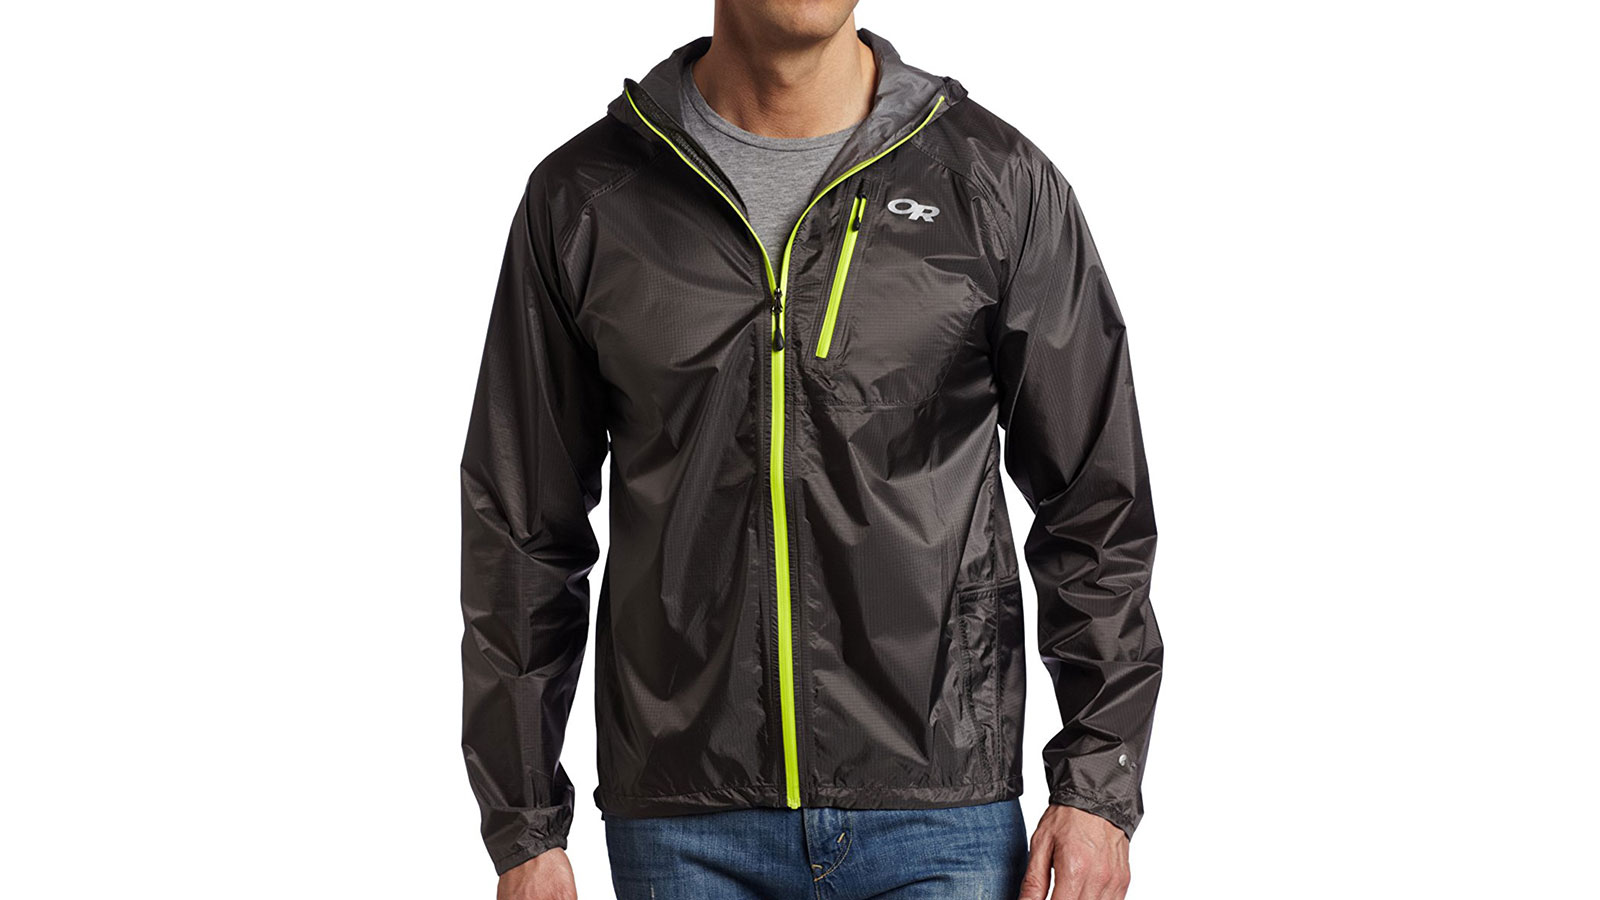 Outdoor Research Helium II Men's Windbreaker Jacket | the best men's windbreakr jackets